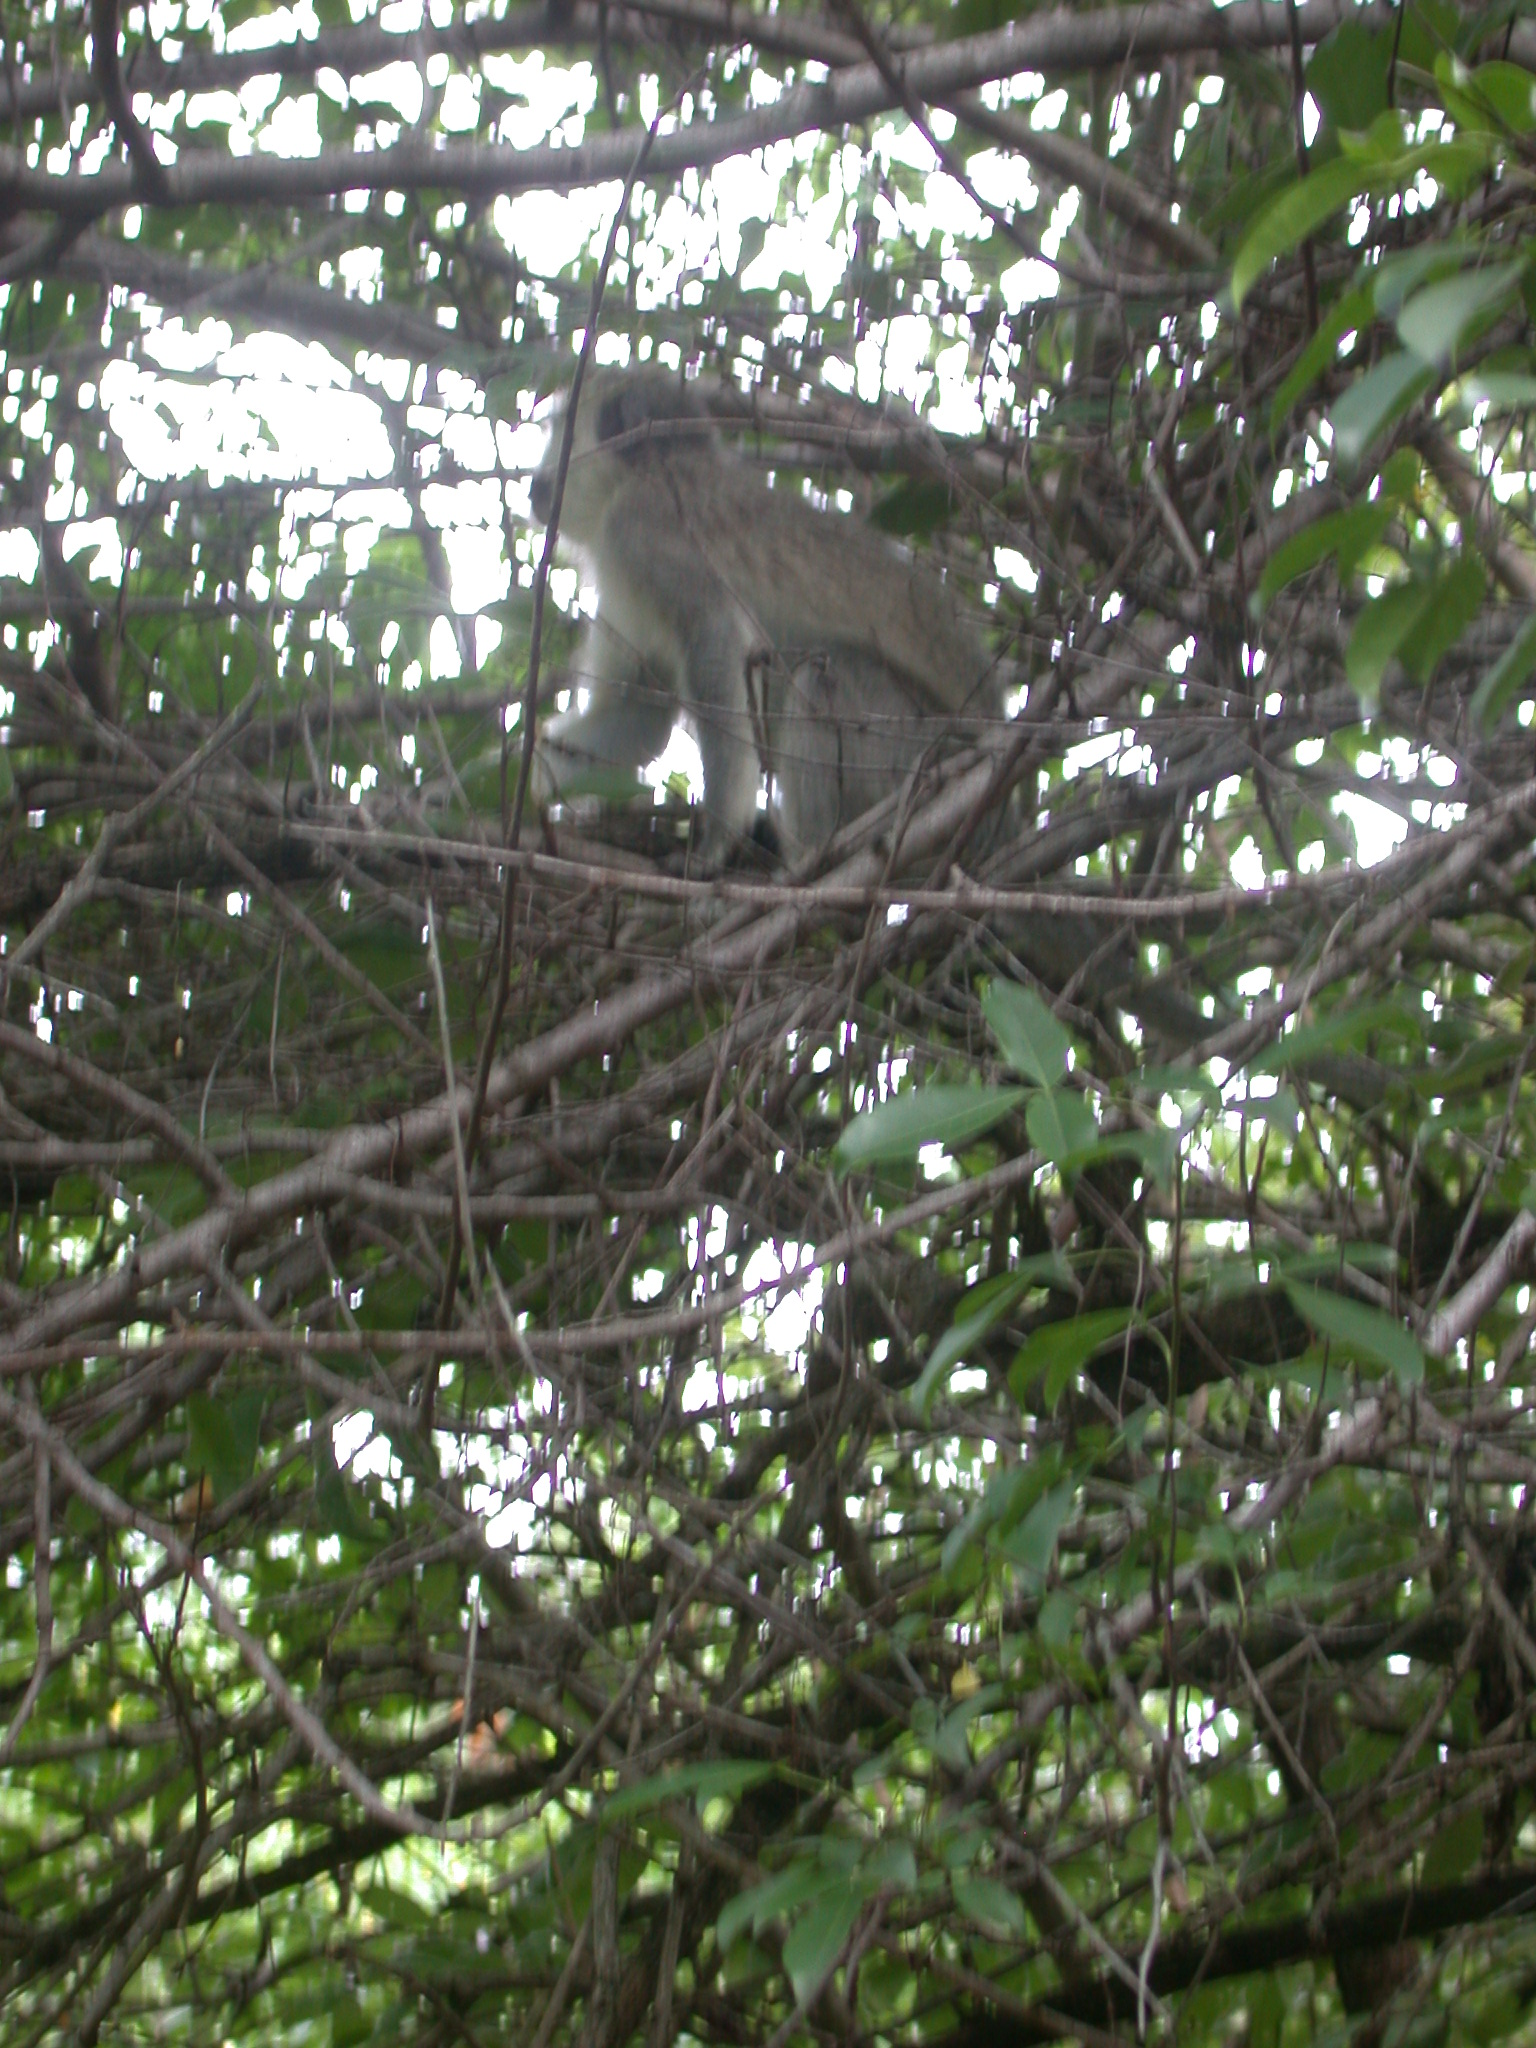 Monkey Climbing Tree in Garden Outside My Suite at the Ancient City Lodge, Great Zimbabwe, Outside Masvingo, Zimbabwe